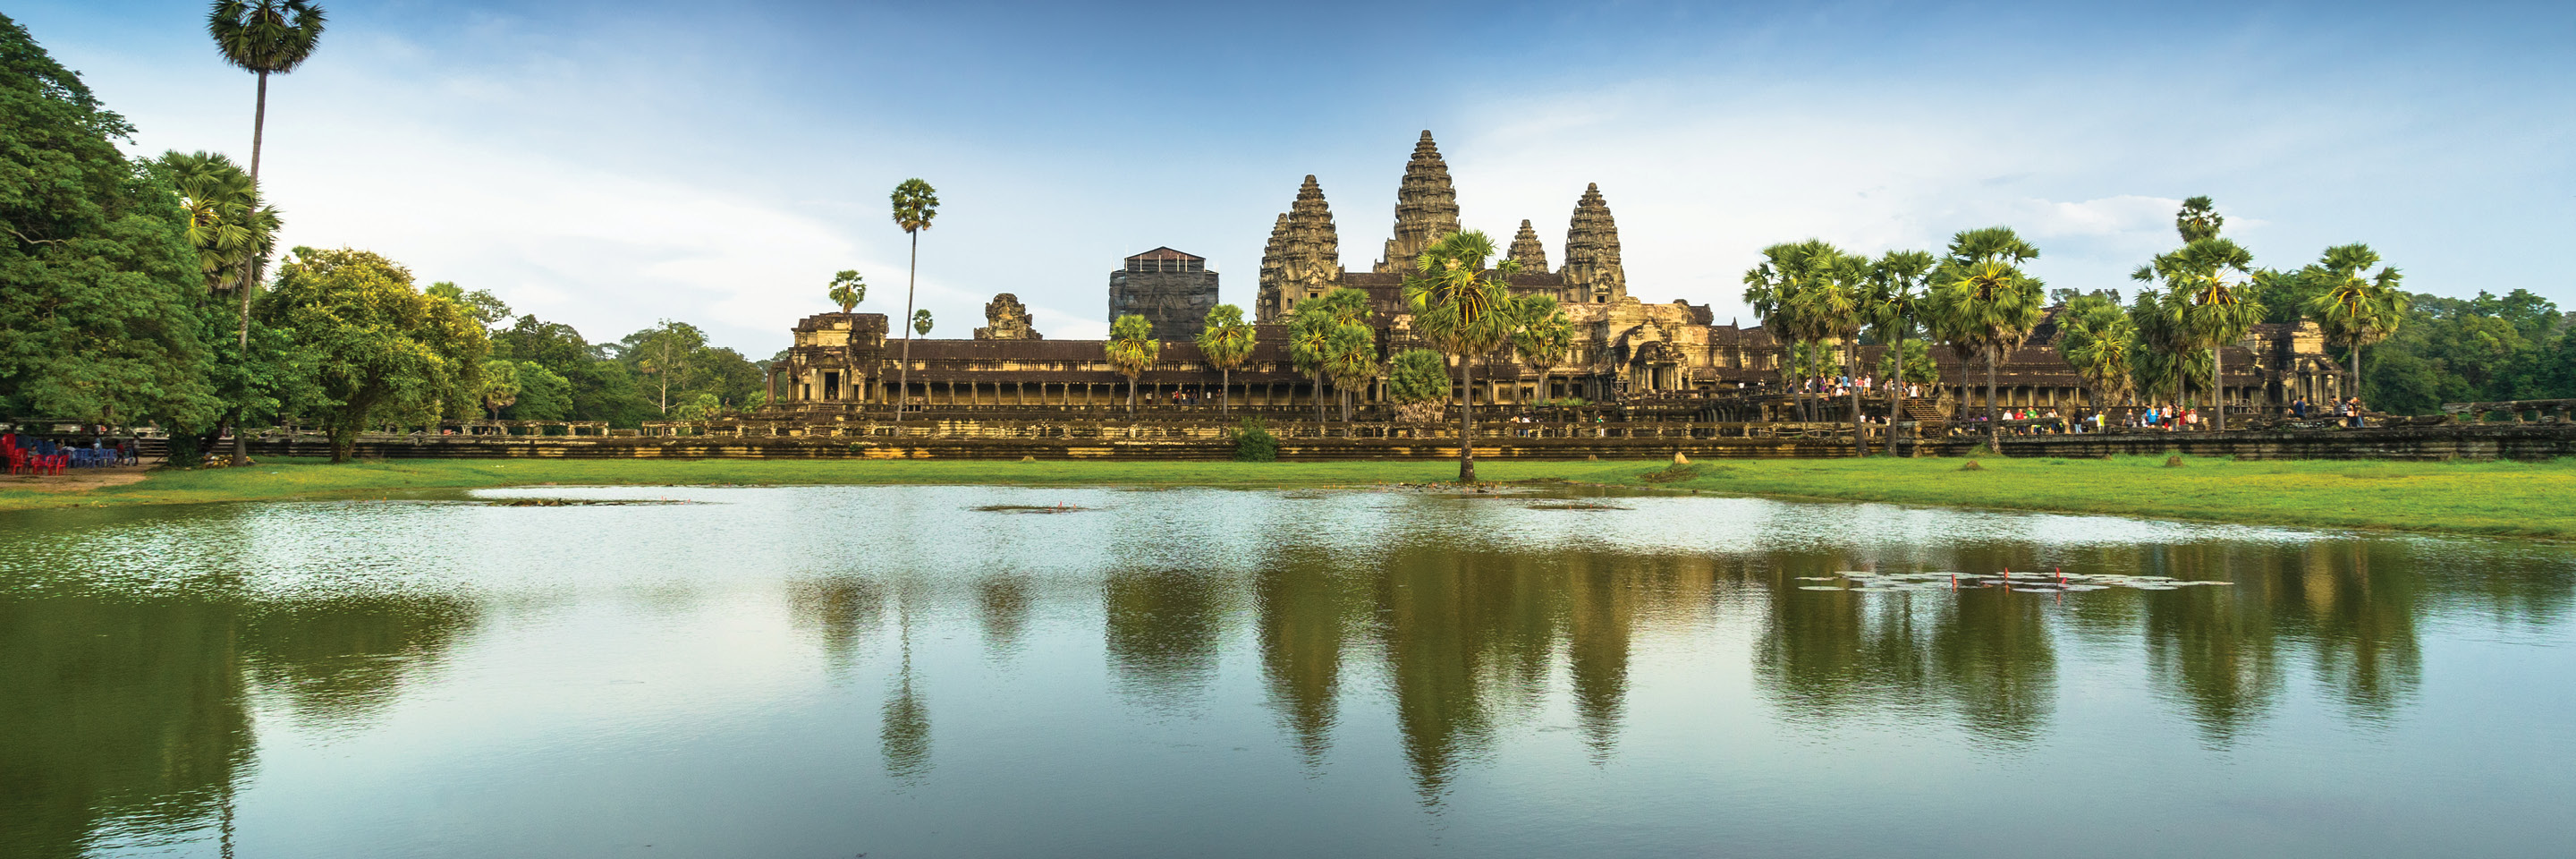 Thailand Experience with Siem Reap